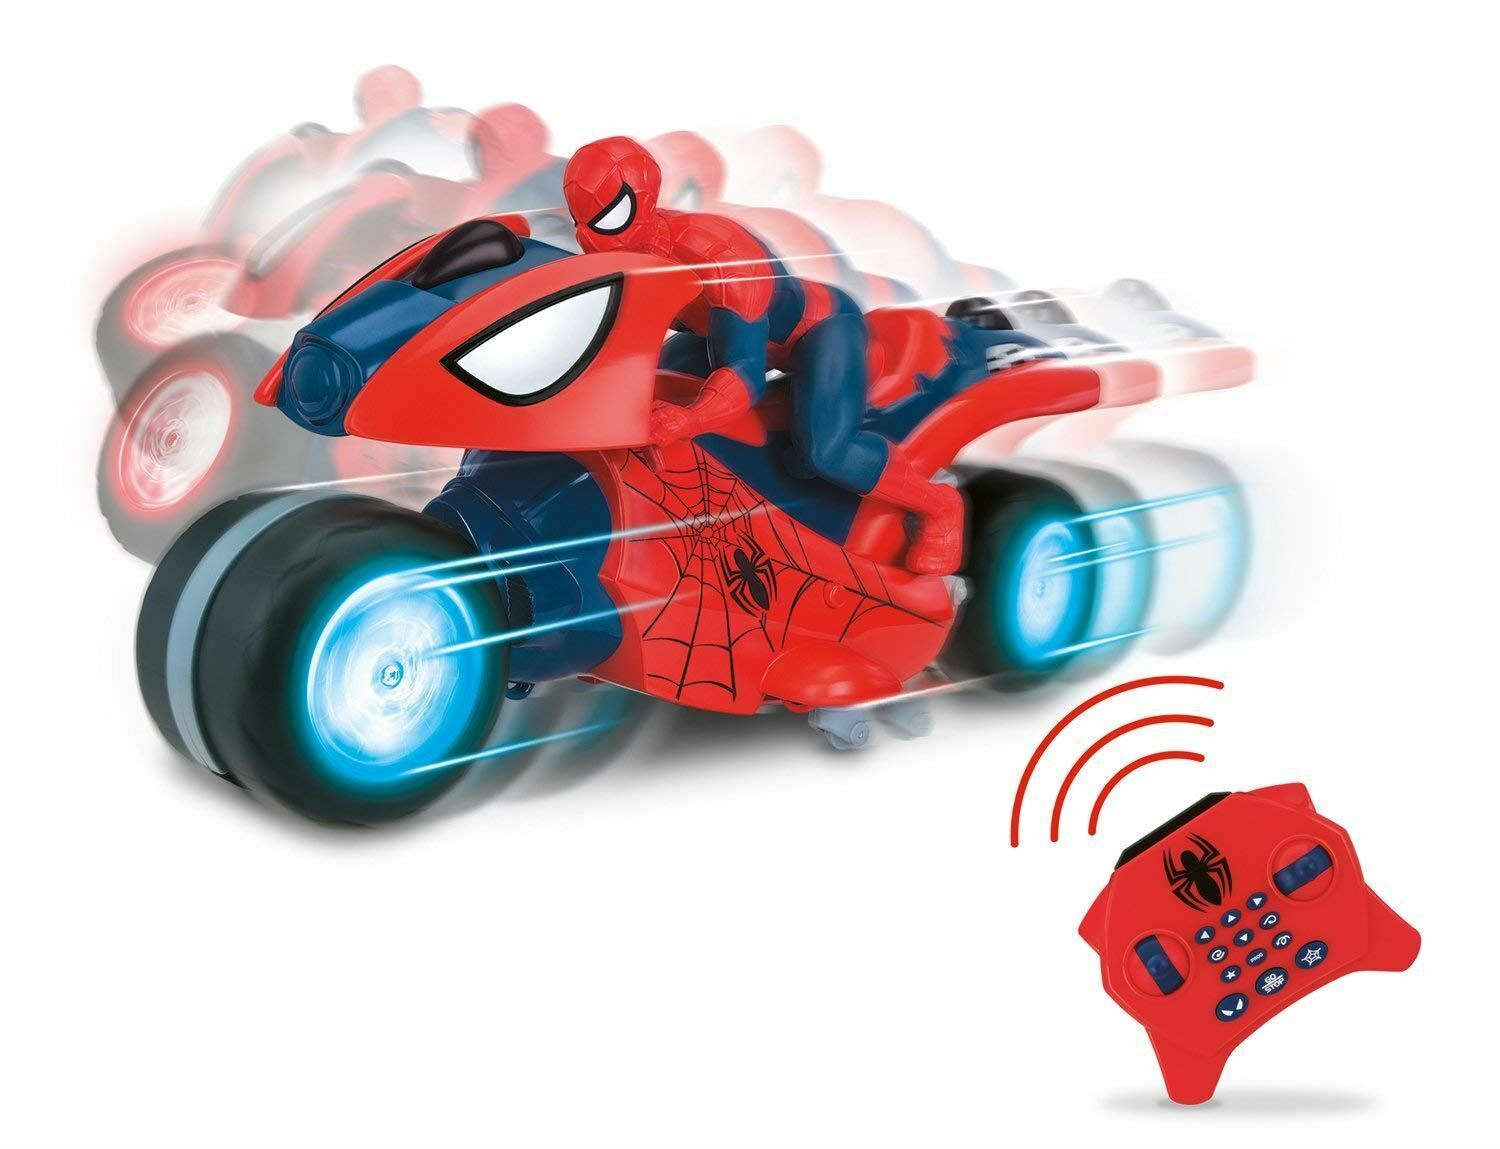 Marvel RC RC RC U Command 20608 Ultimate Spiderman Motorcycle Toy 9e740a